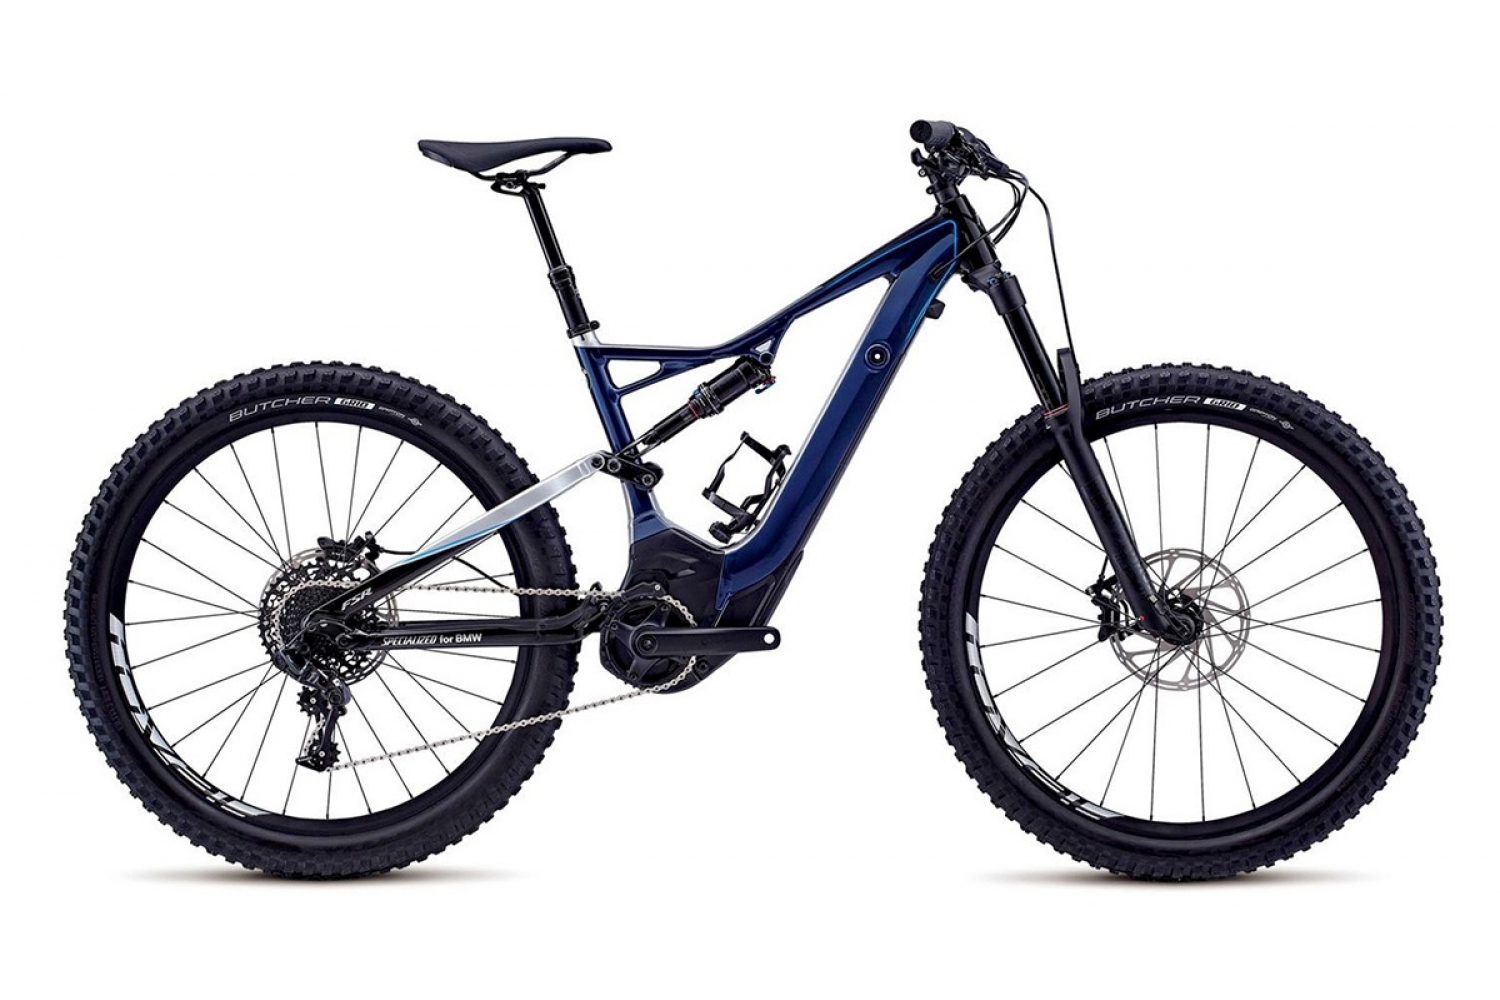 TURBO LEVO - лучшее из возможного! Specialized Turbo Levo FSR Men Comp 6Fattie special series Артикул 95218-6504